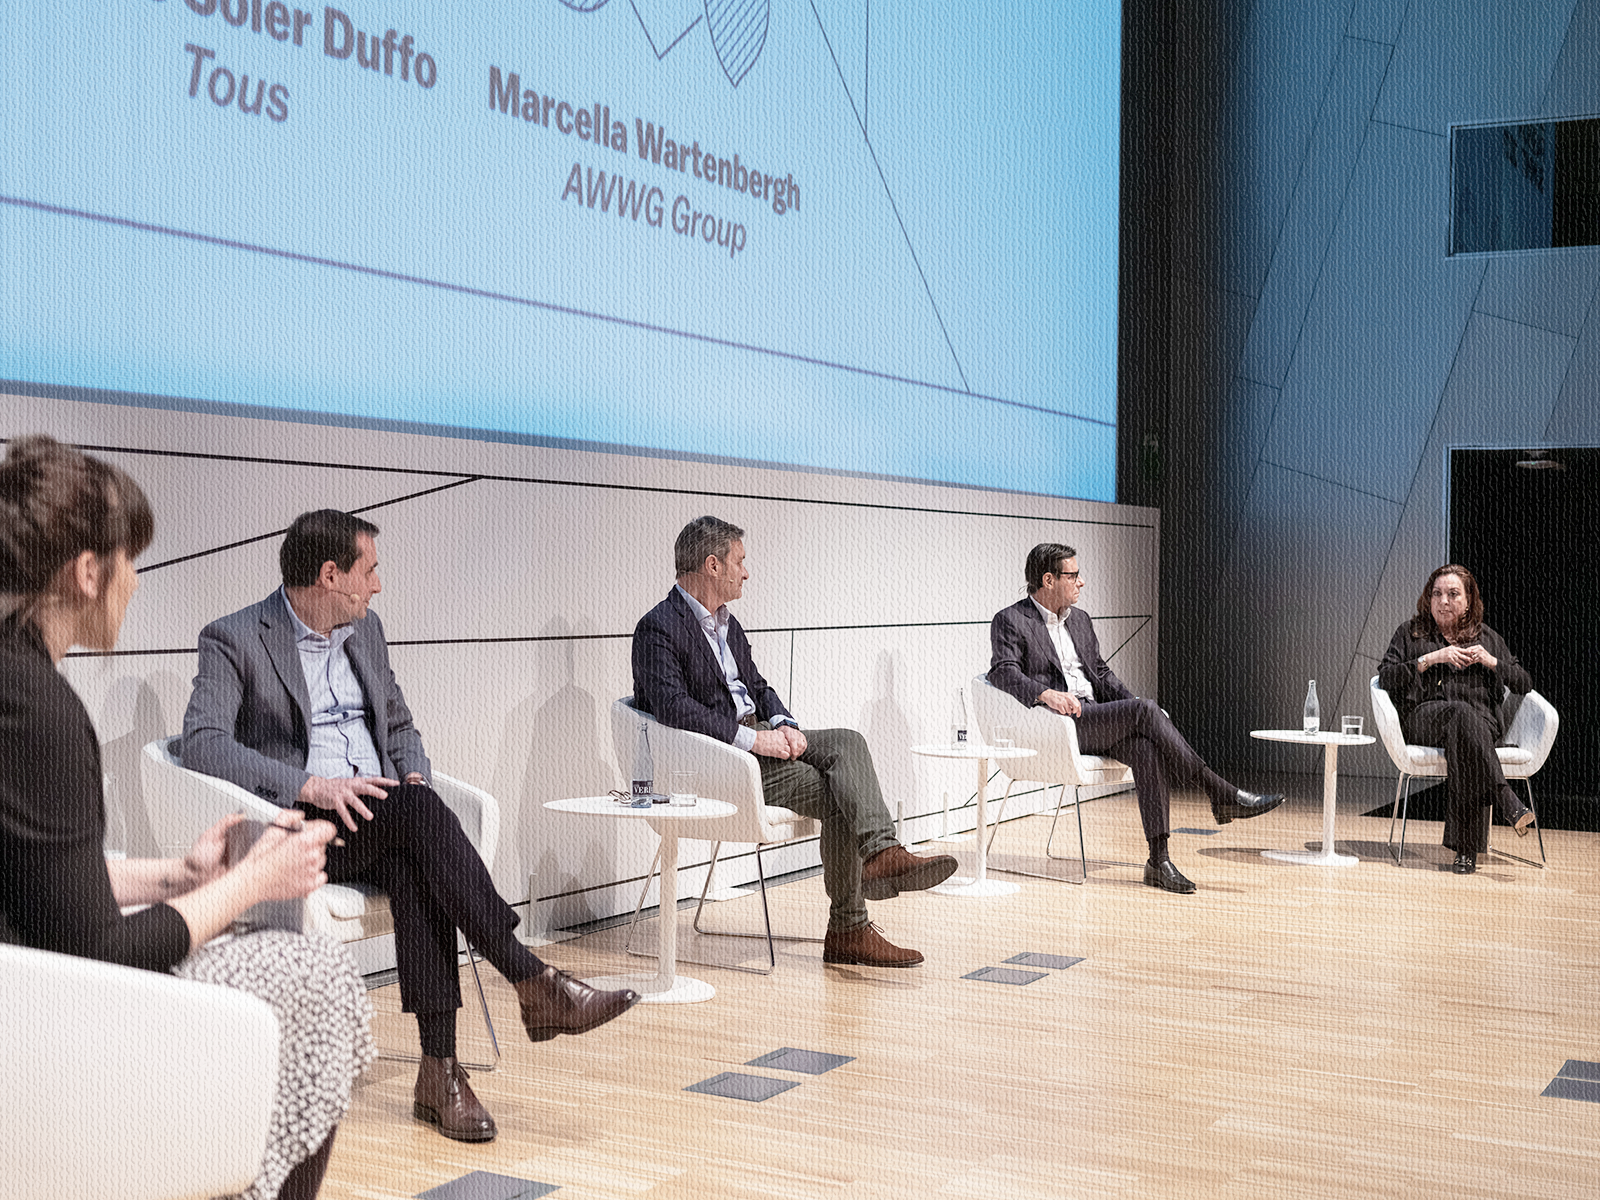 /bfs21/slideshows/1.png